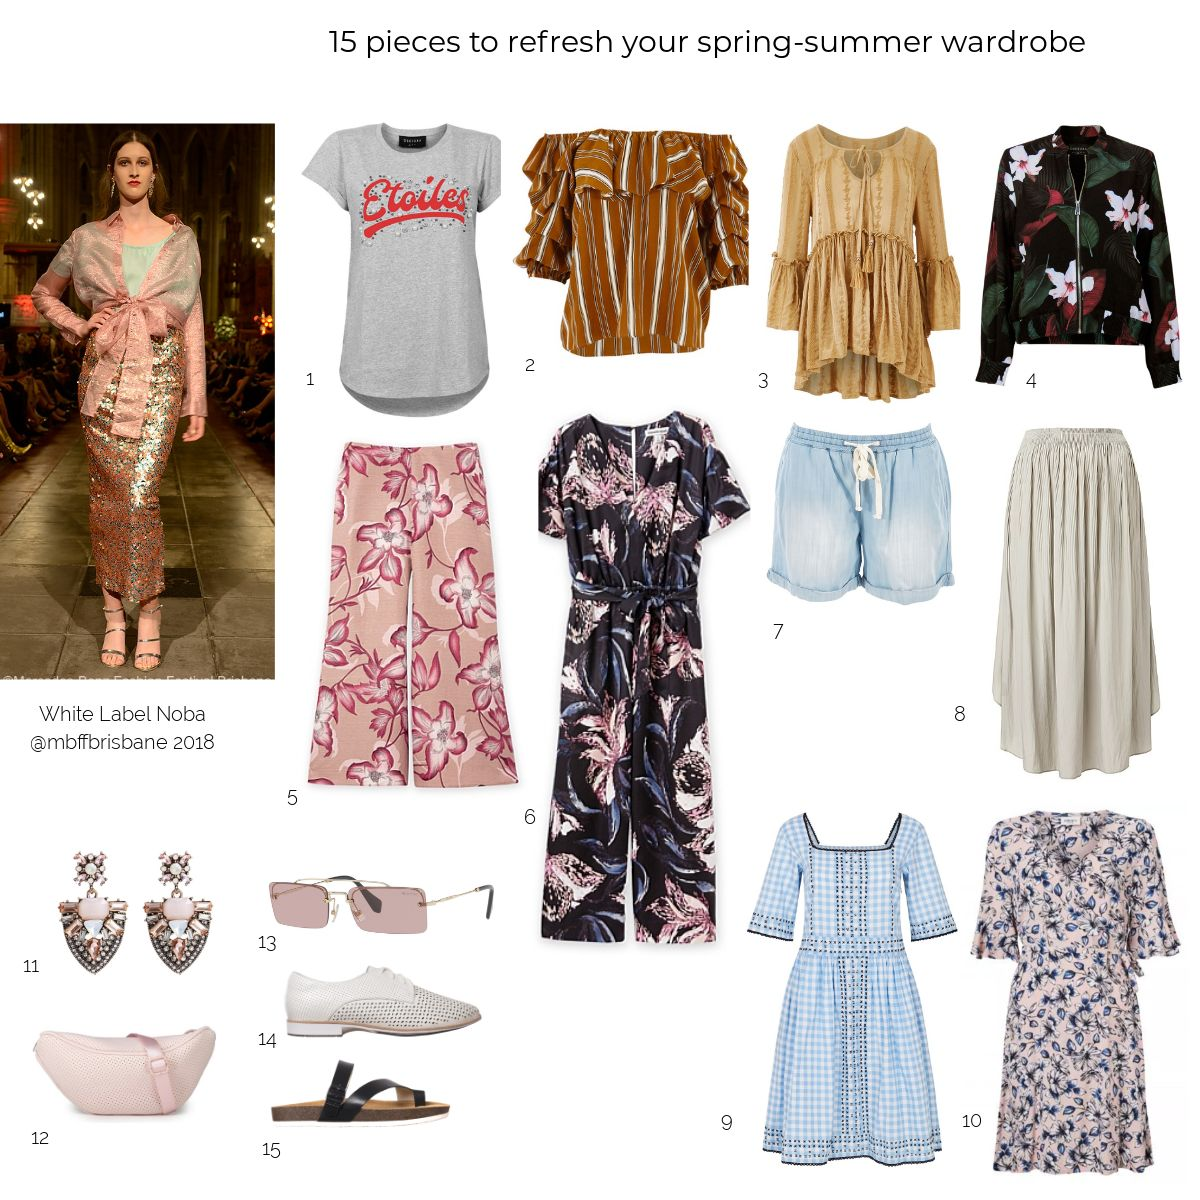 d368d10f57 The spring-summer 2018 trends you ll want to add to your wardrobe